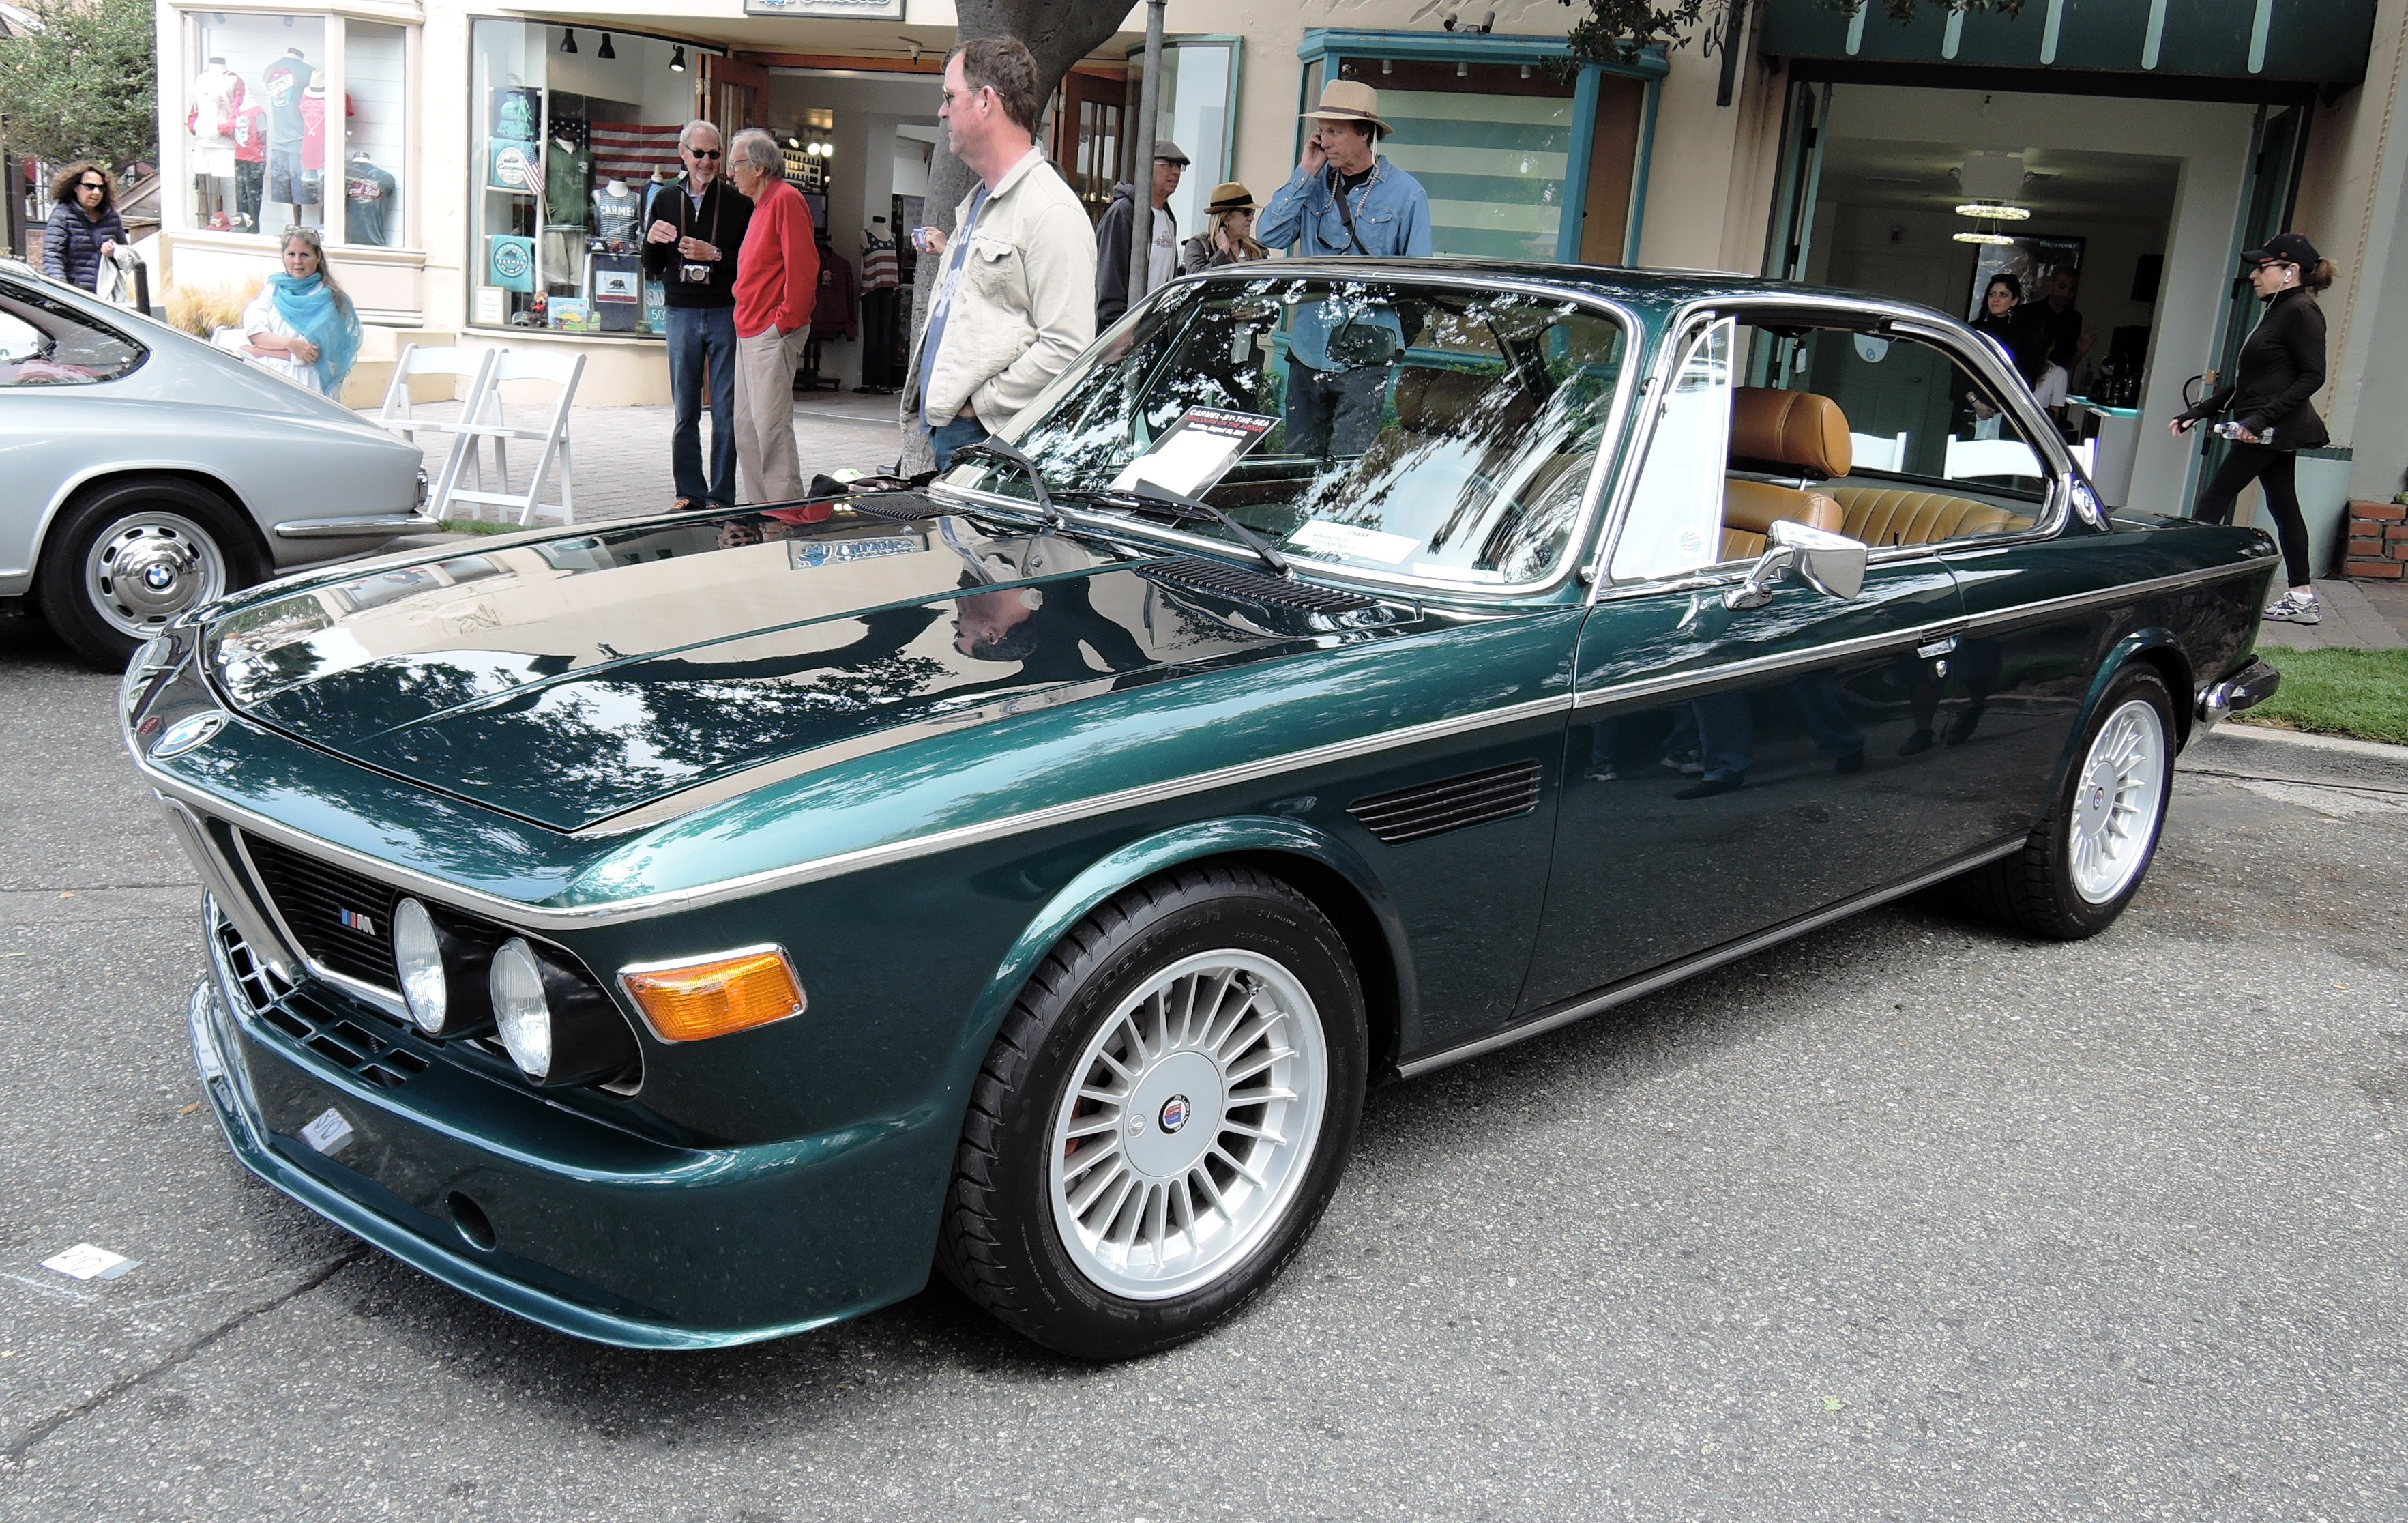 green 1972 BMW 3.0 CSi - Concours on the Ave Carmel